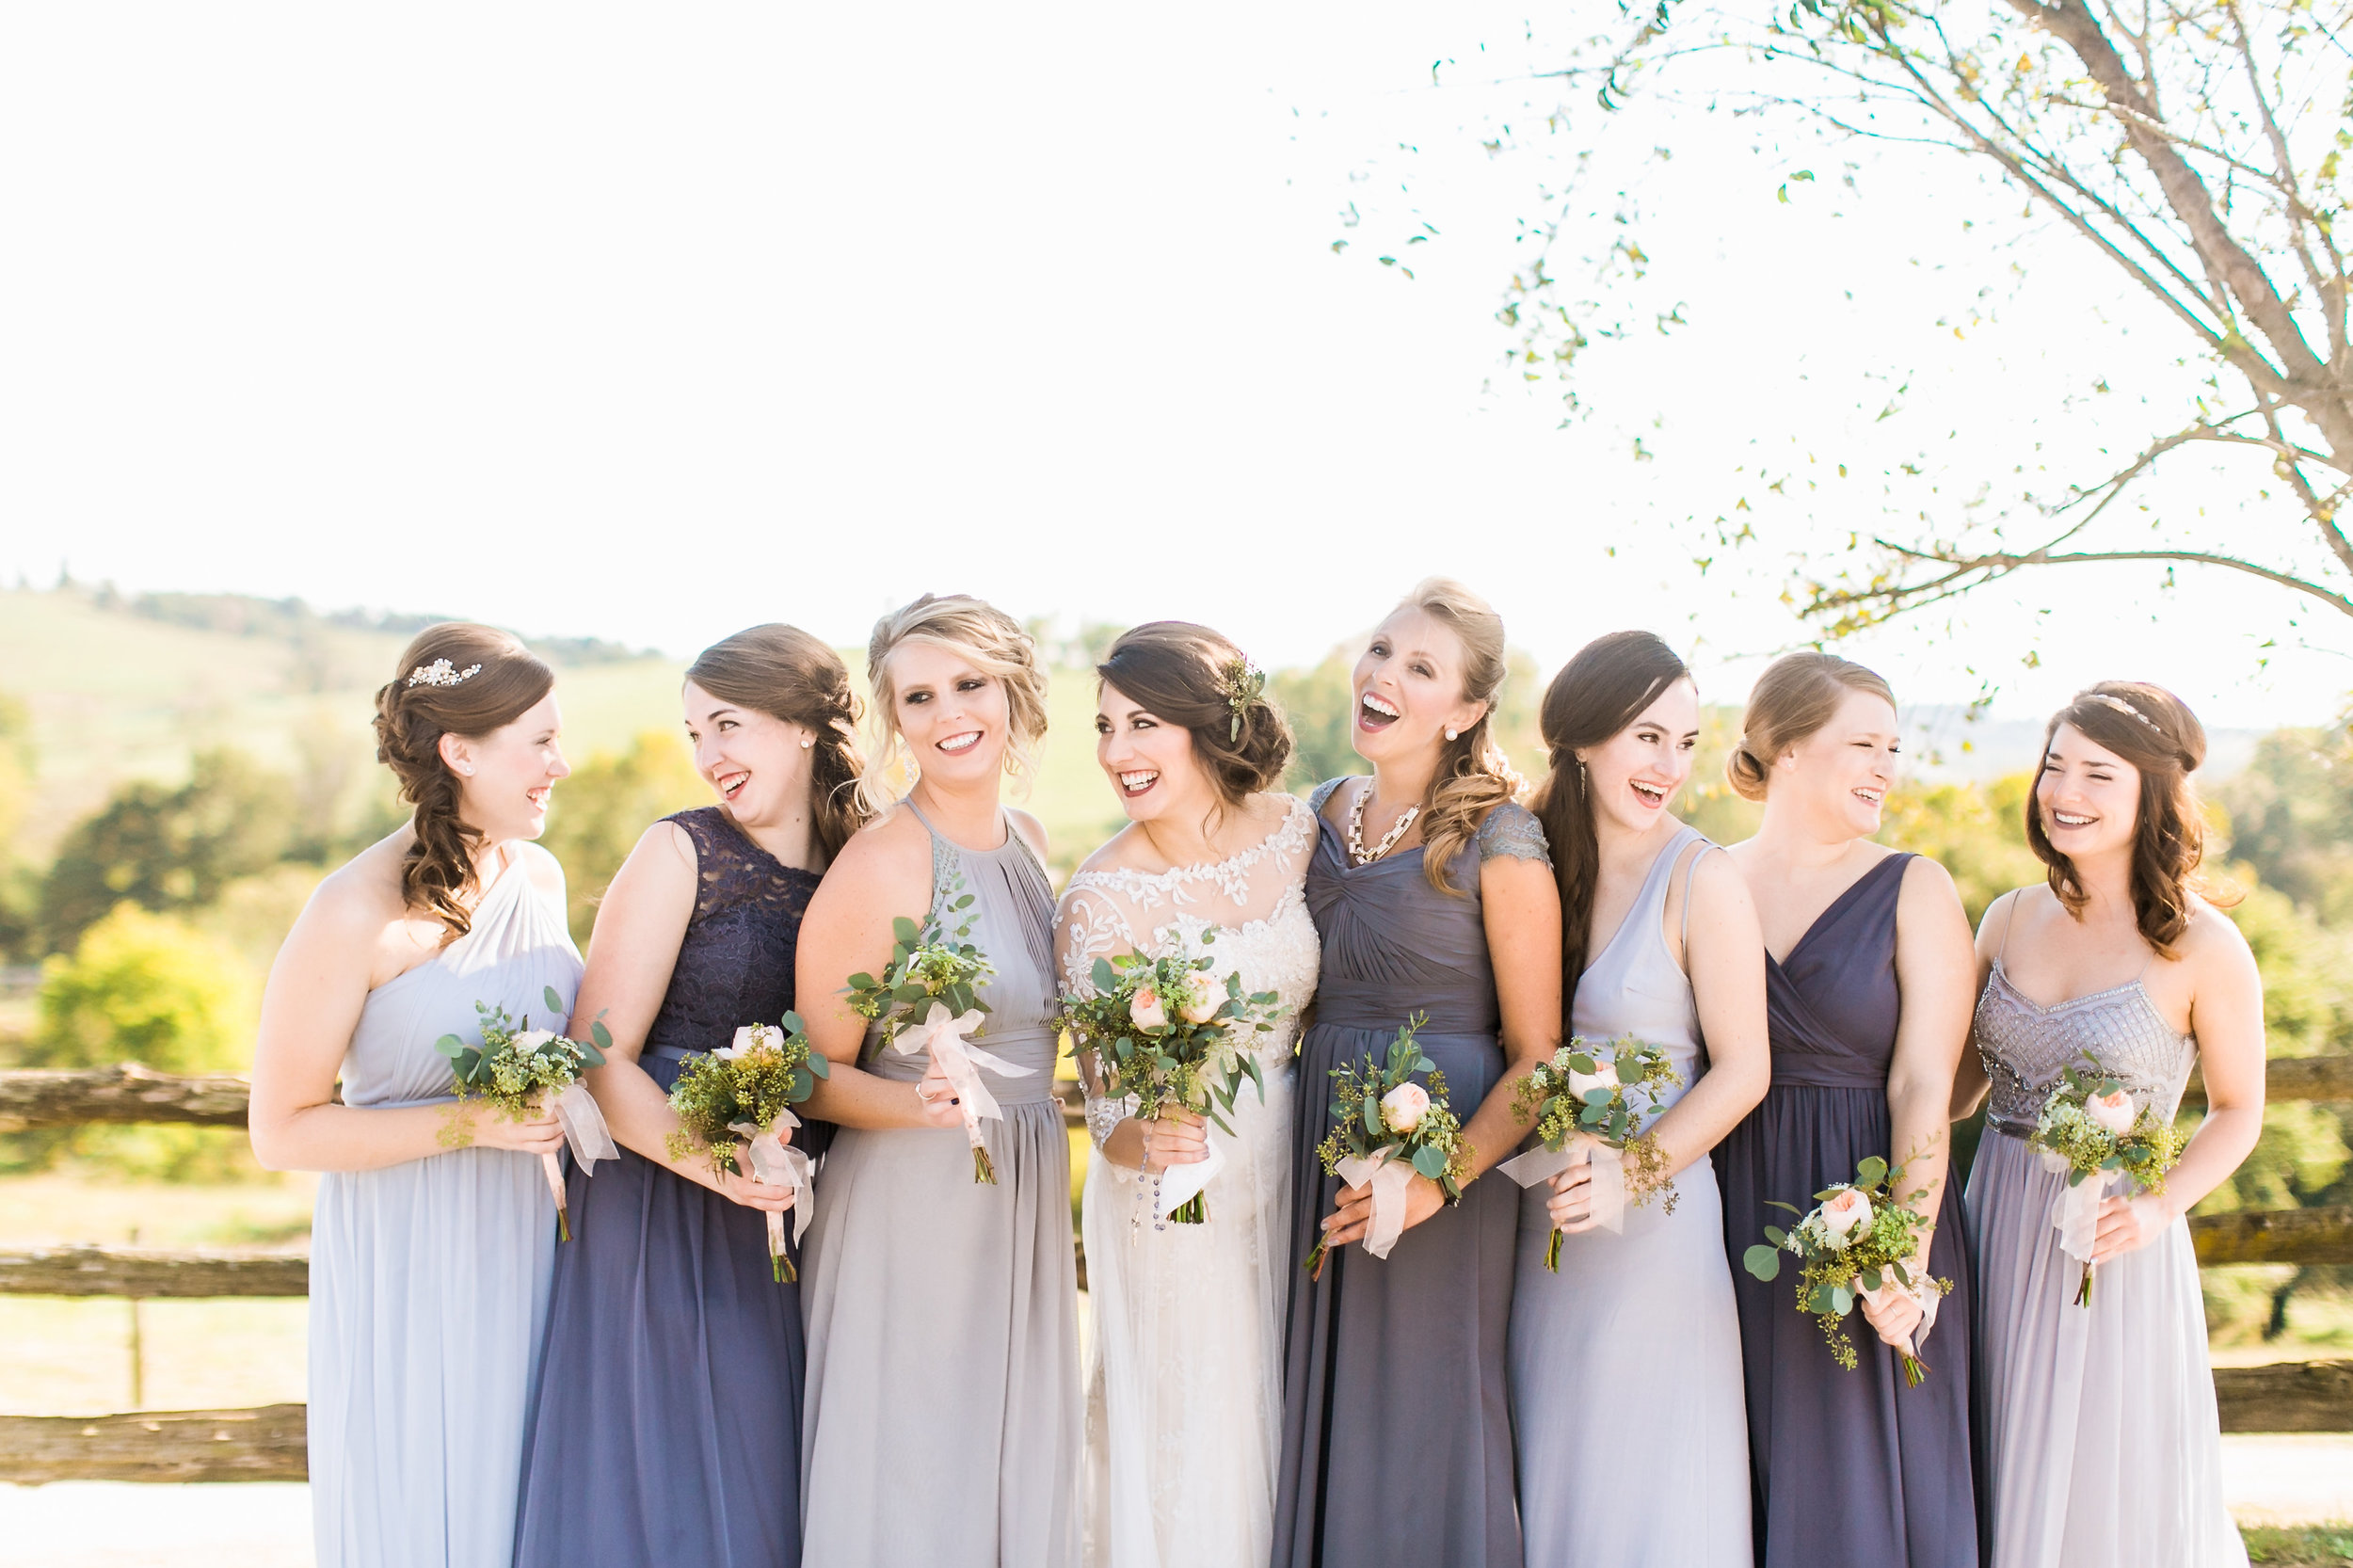 MissouriRusticWedding_StLouisWeddingPhotographer_AliciaDan_CatherineRhodesPhotography-1907-Edit.jpg